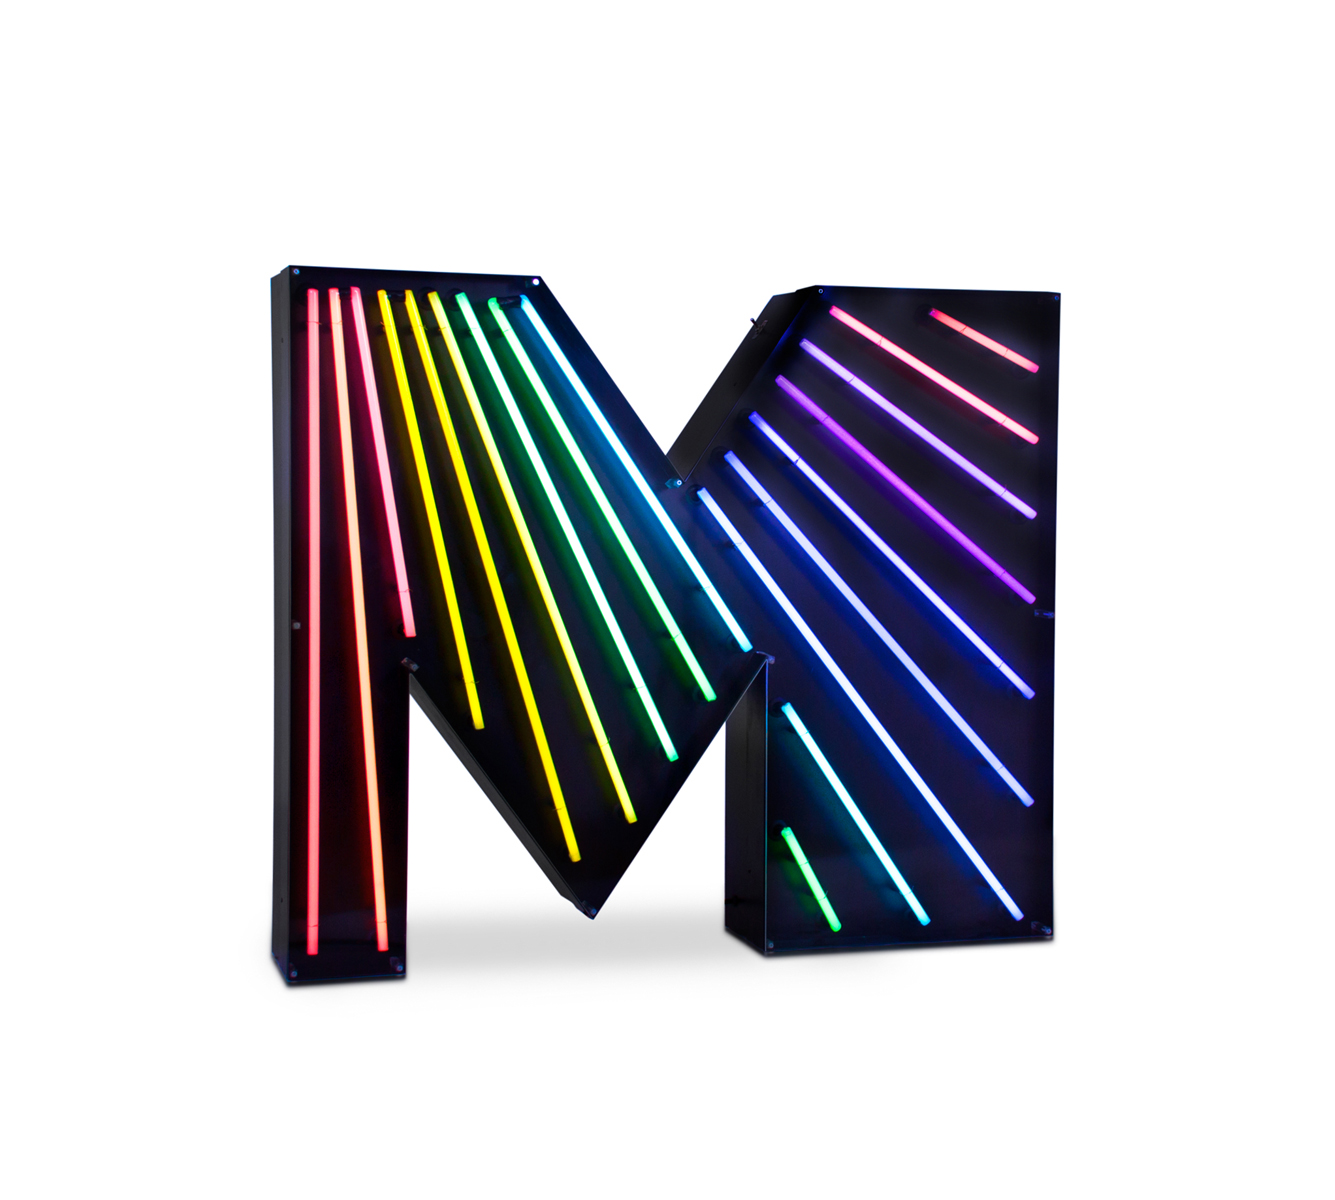 M Letter Graphic Lamp Delightfull Love Happens